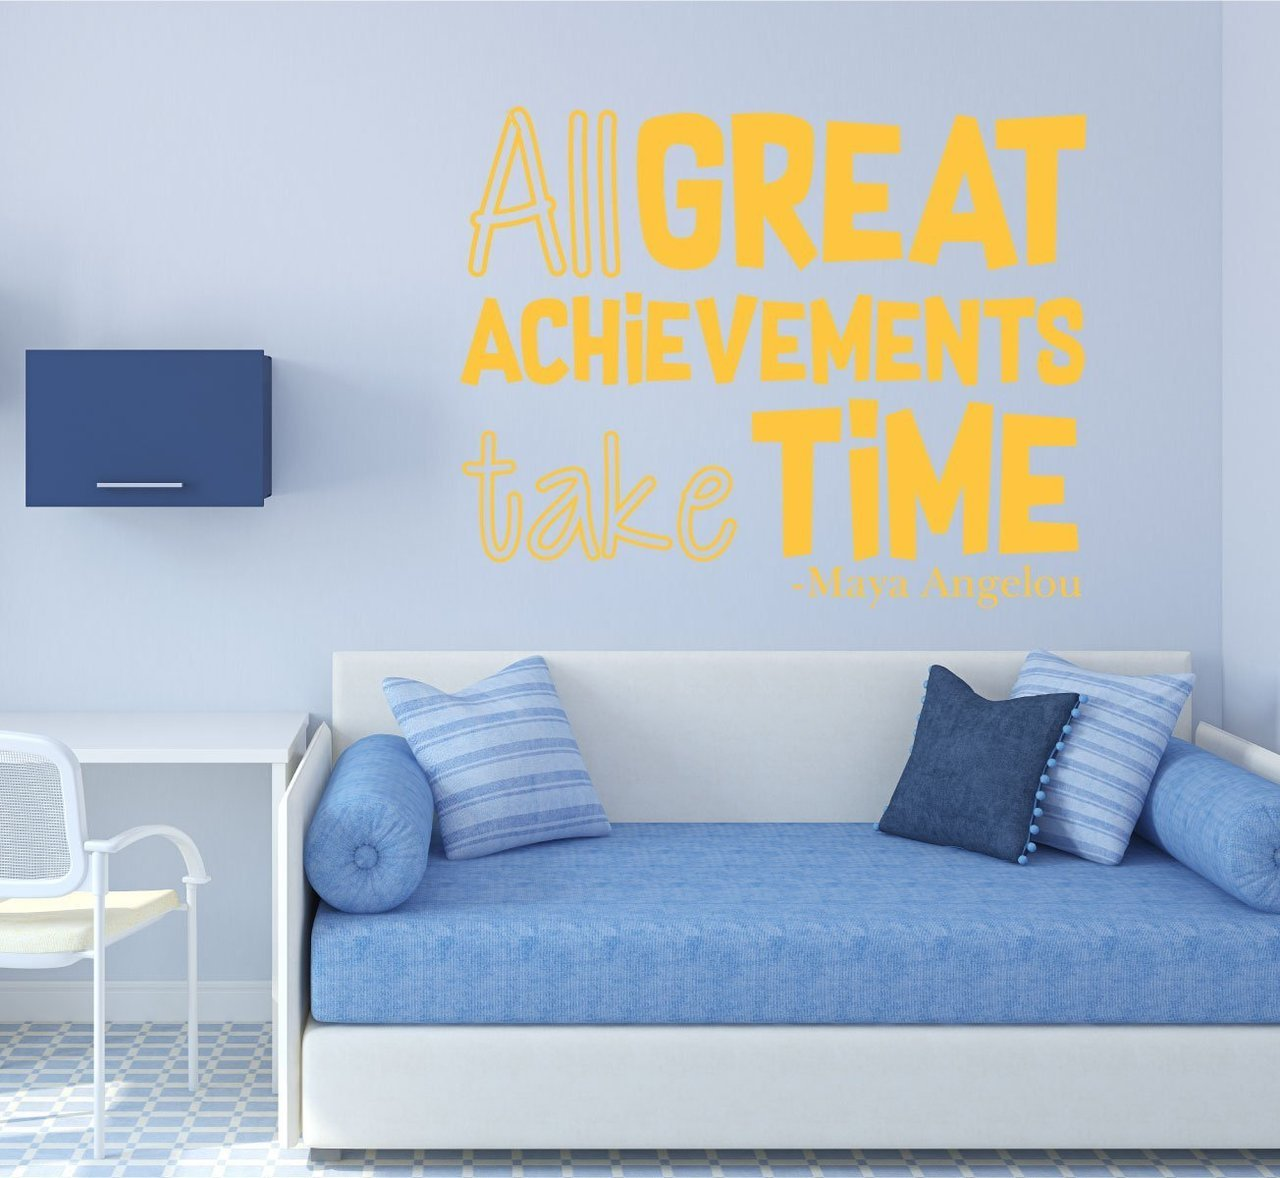 All Great Achievements Take Time - Maya Angelou Quotes